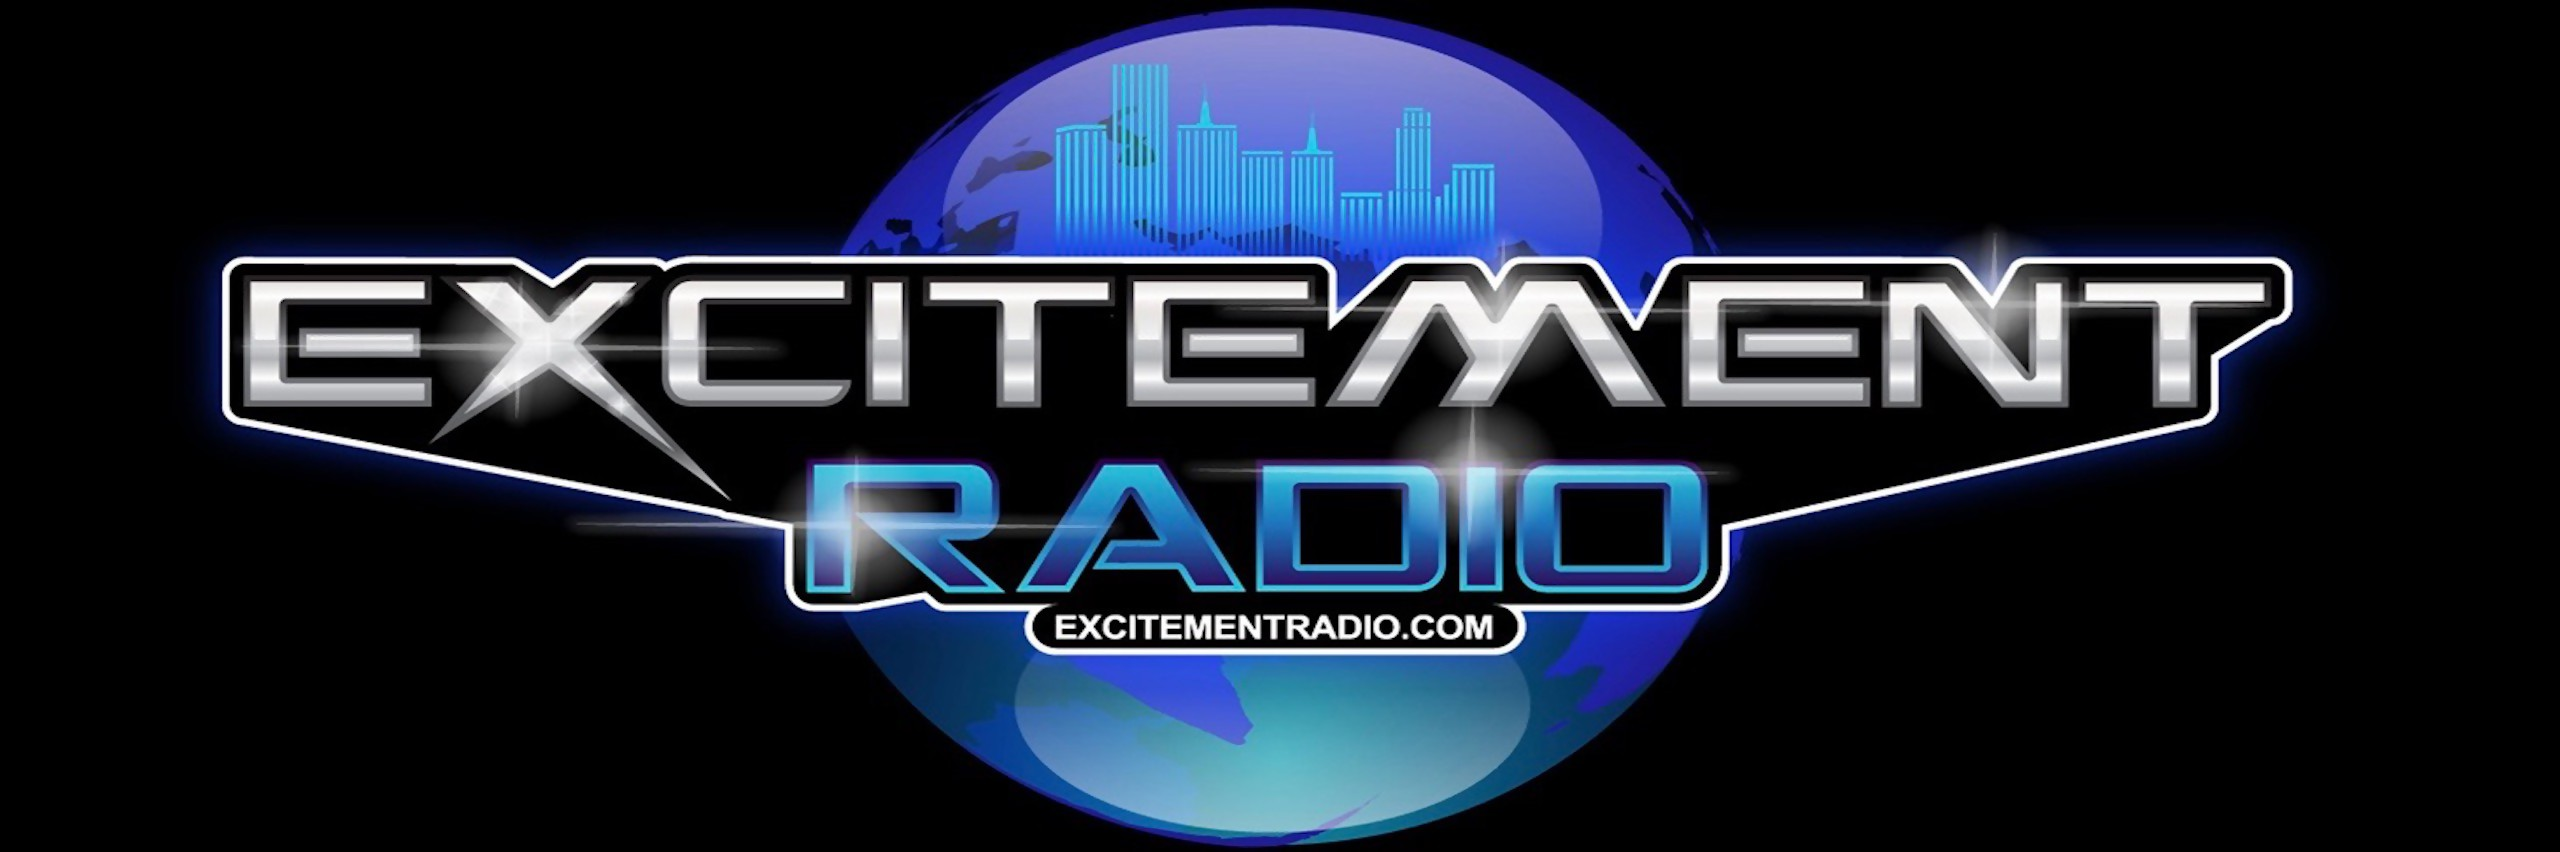 EXCITEMENT RADIO